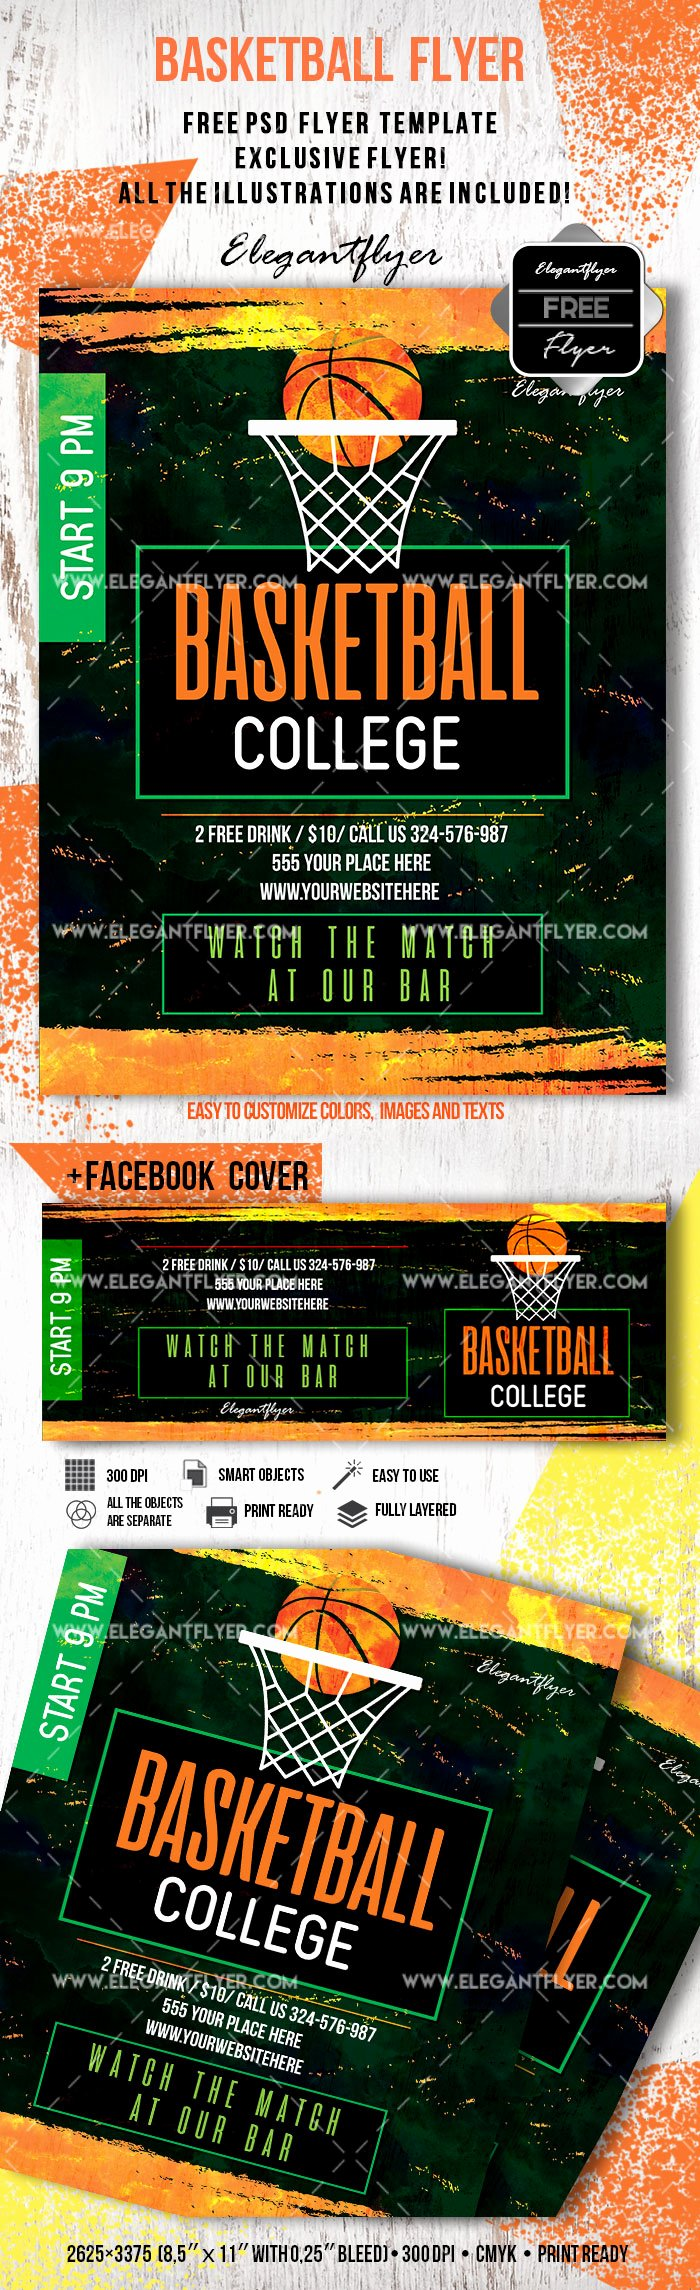 Free Basketball Flyer Template Inspirational Free Basketball Flyer Template – by Elegantflyer